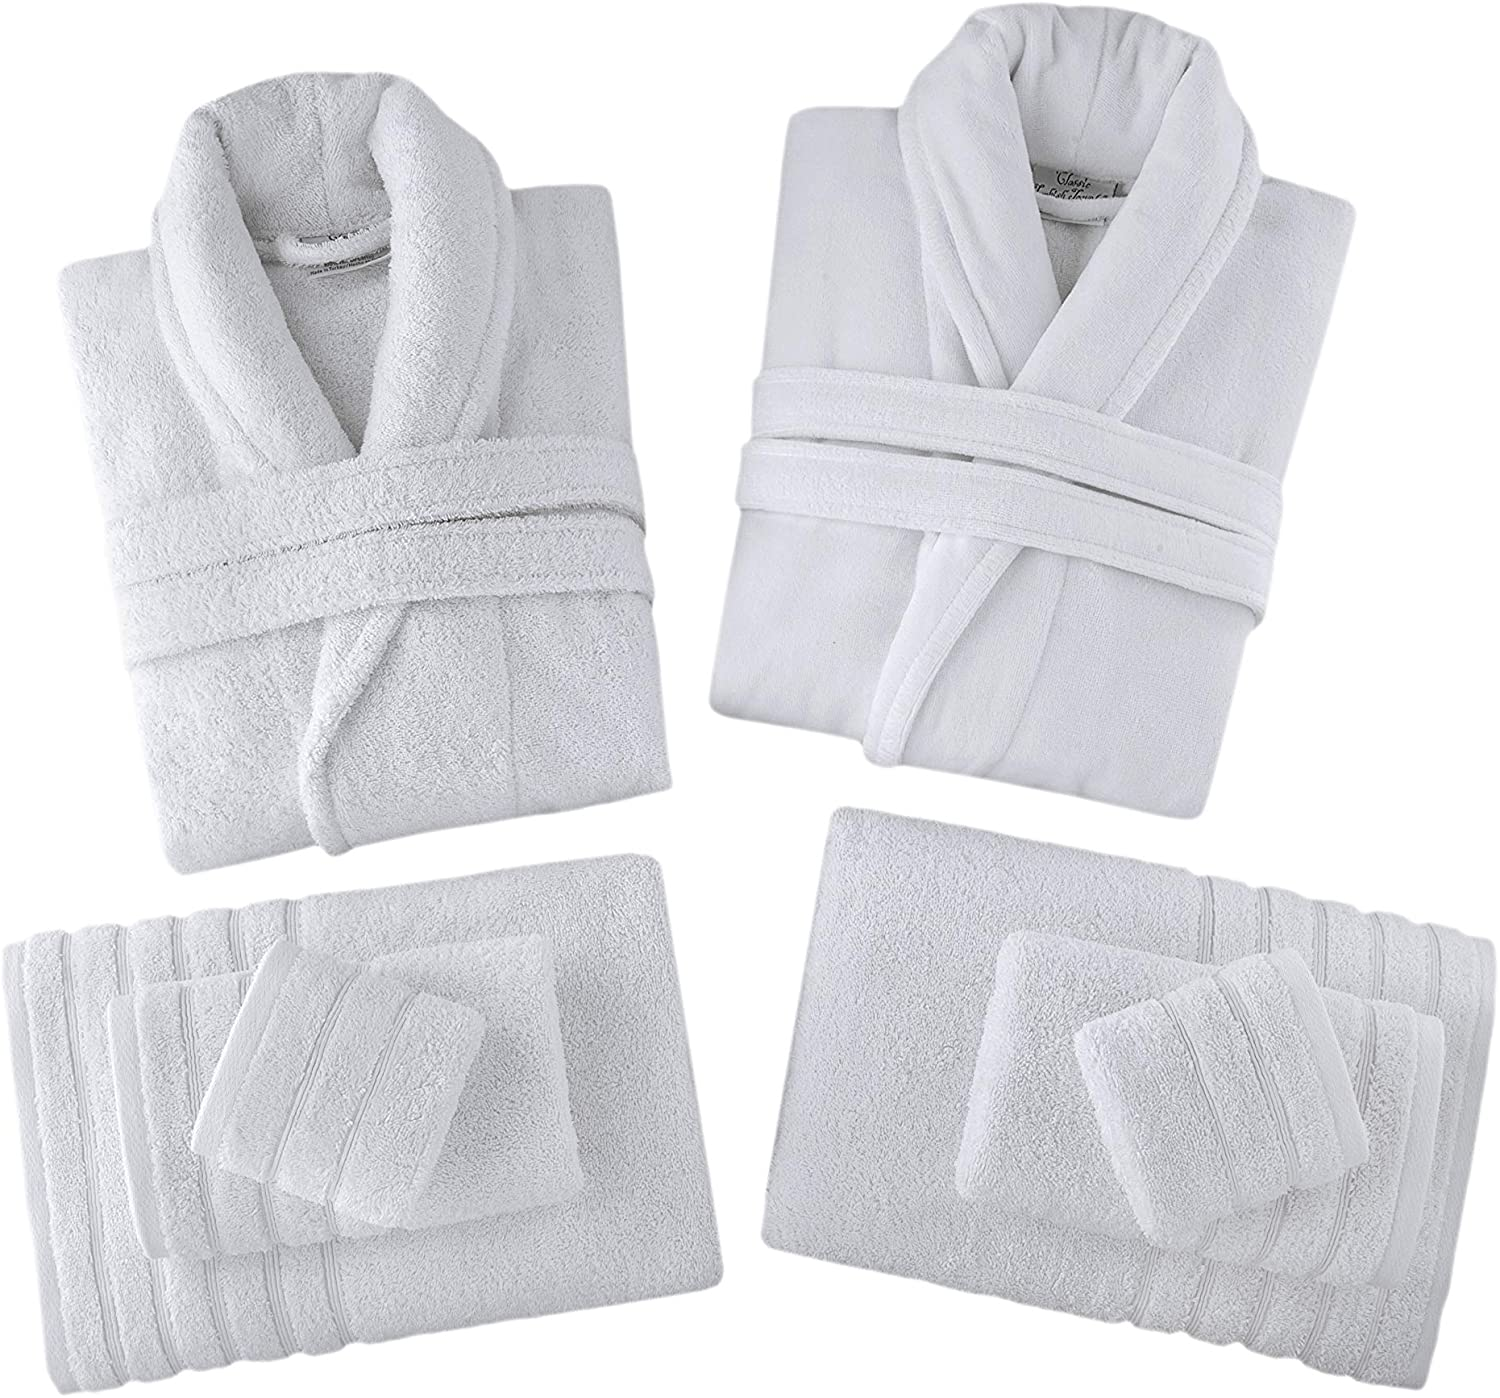 Classic Turkish Towels Velour Shawl Bathrobe Set - Includes Shawl Terry Robe and 8 Piece Towel Set Made with 100% Turkish Cotton (White, Gift Box Set)